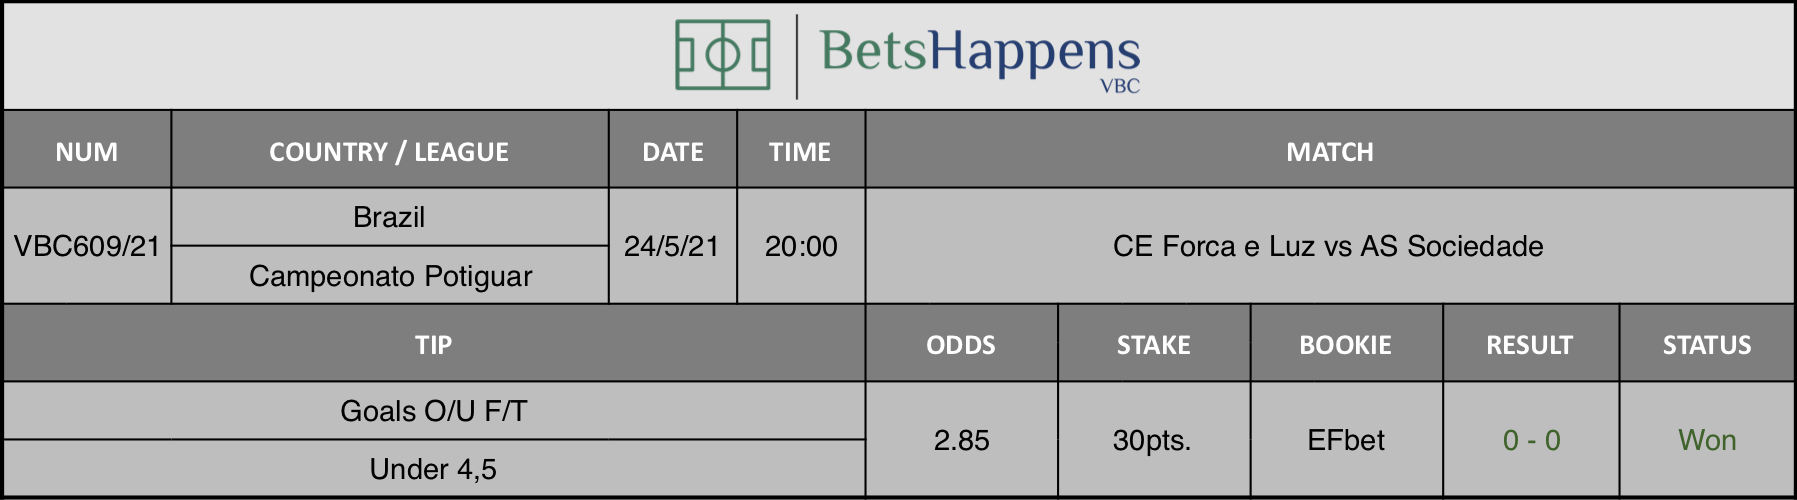 Results of our tip for the CE Forca e Luz vs AS Sociedade match where Goals O/U F/T Under 4,5 is recommended.